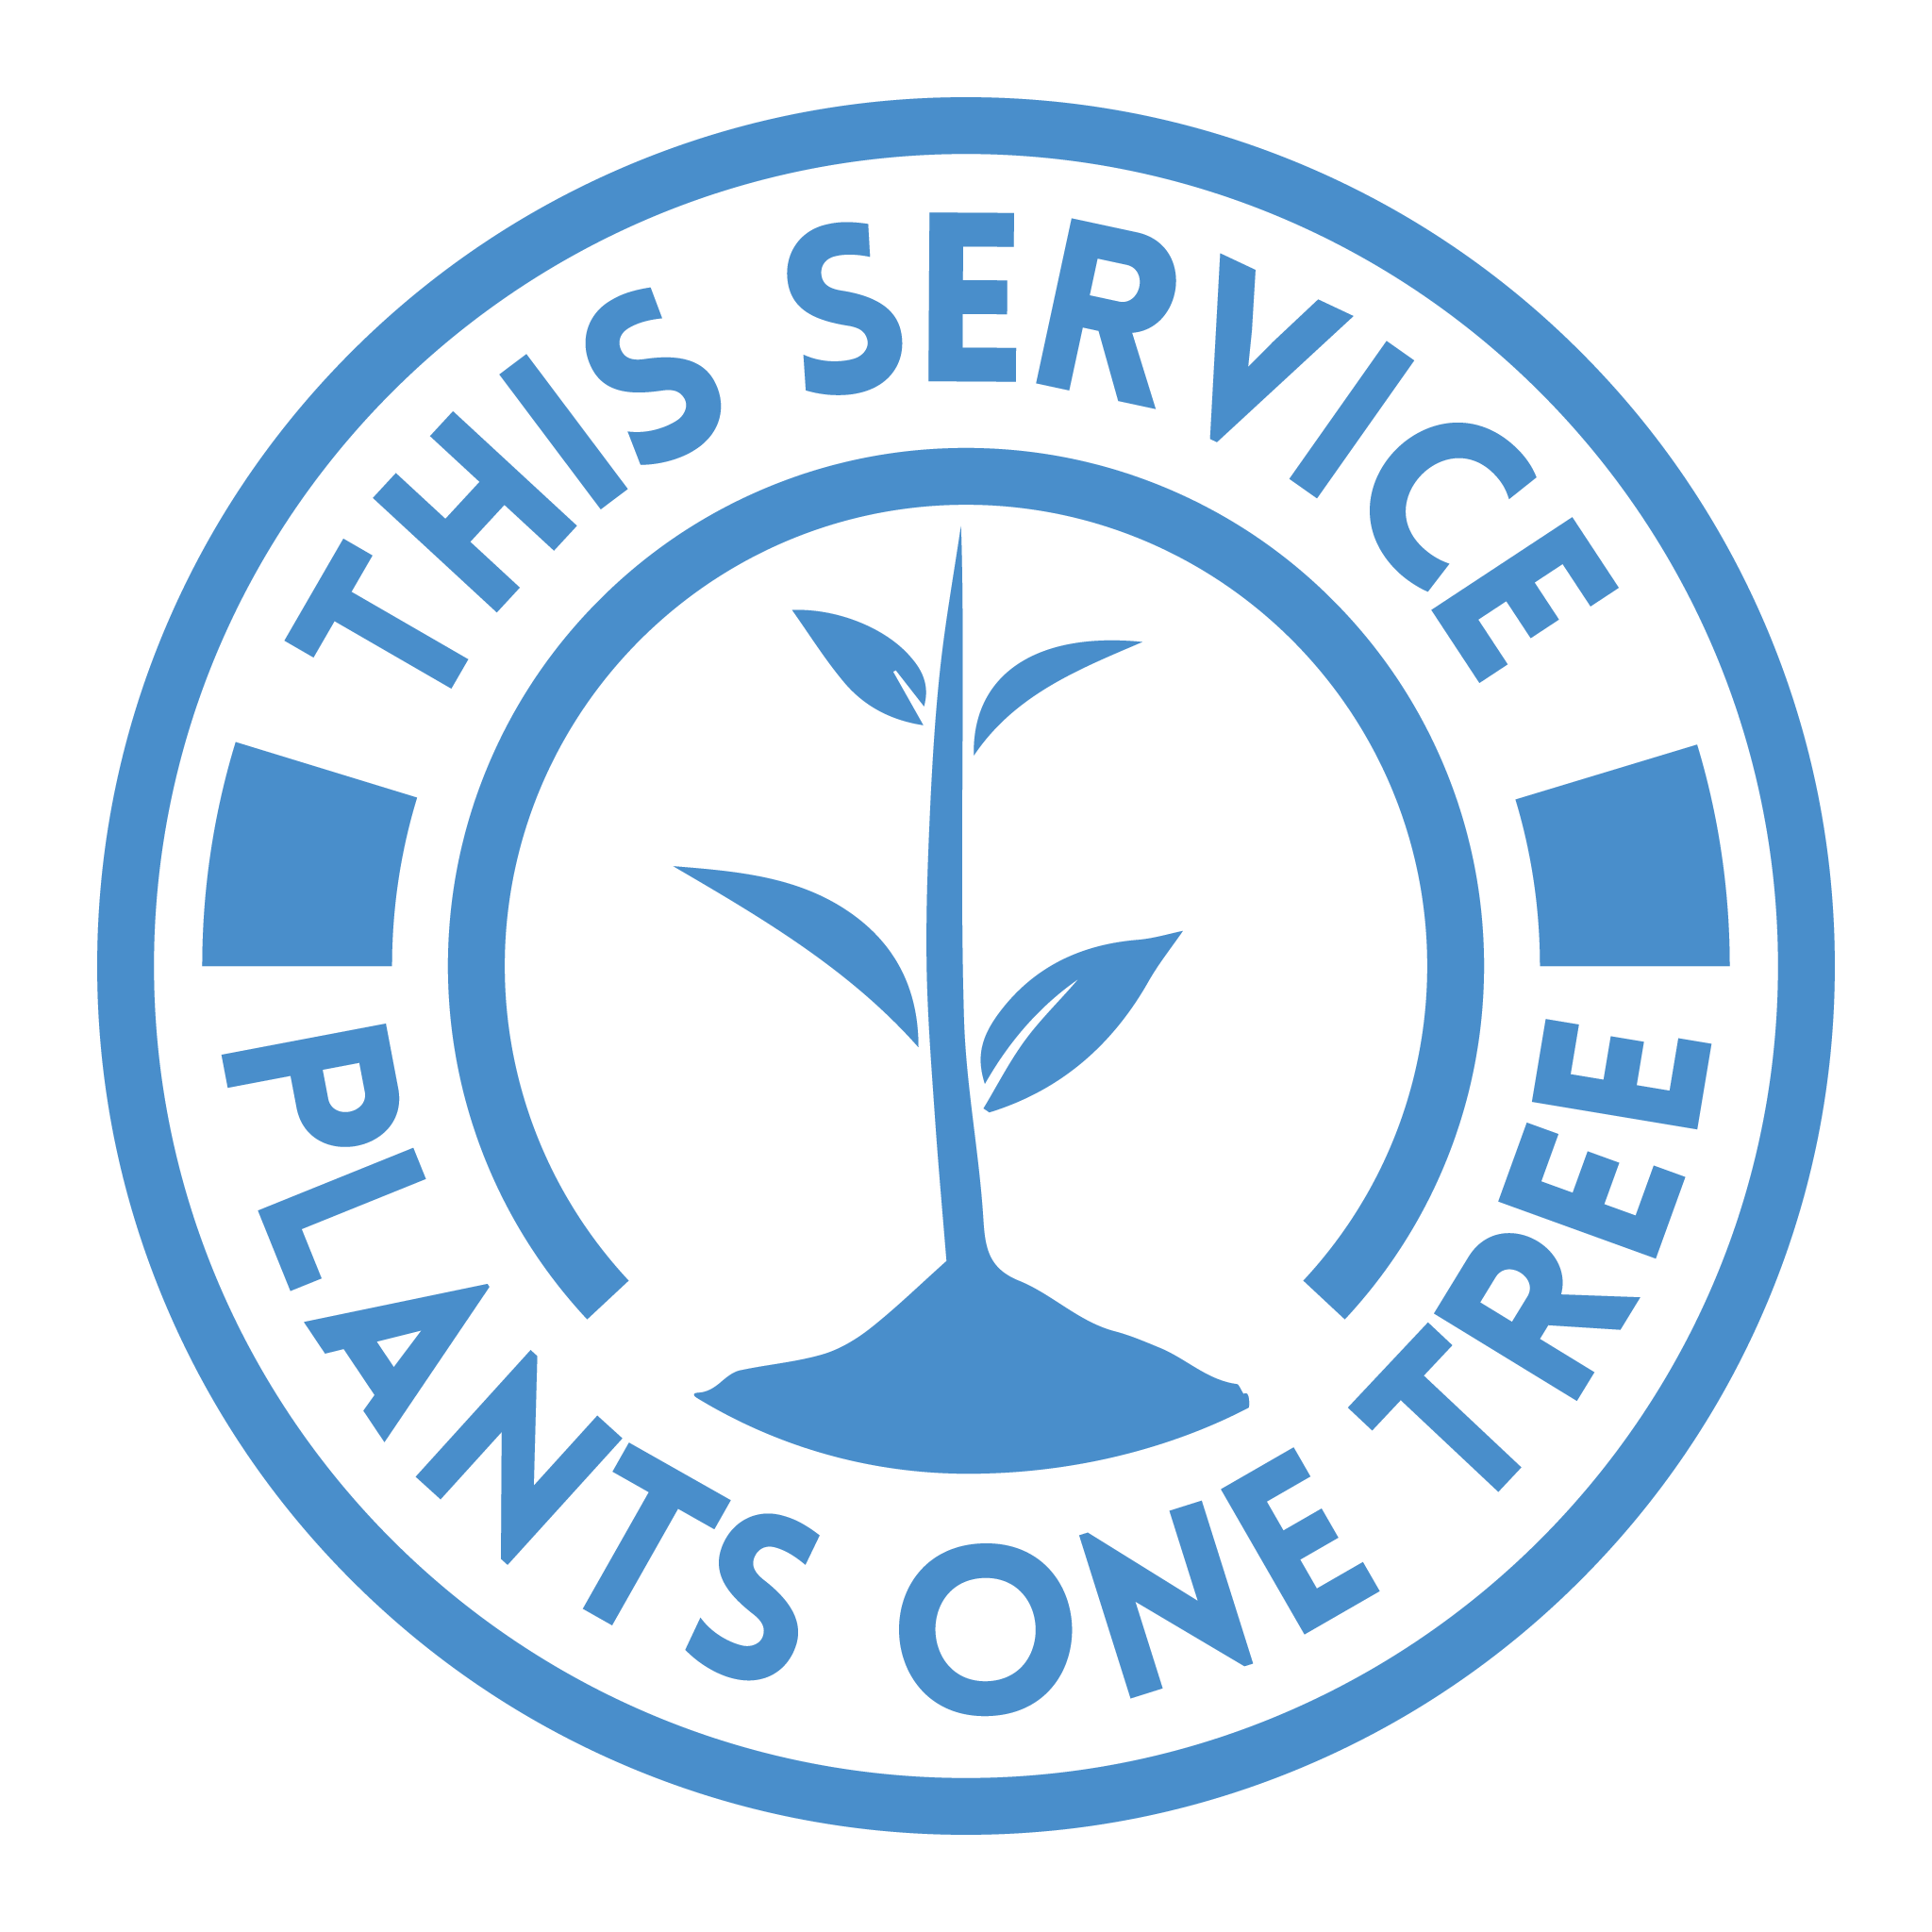 ServiceOneTreeStampDesignBlue.png